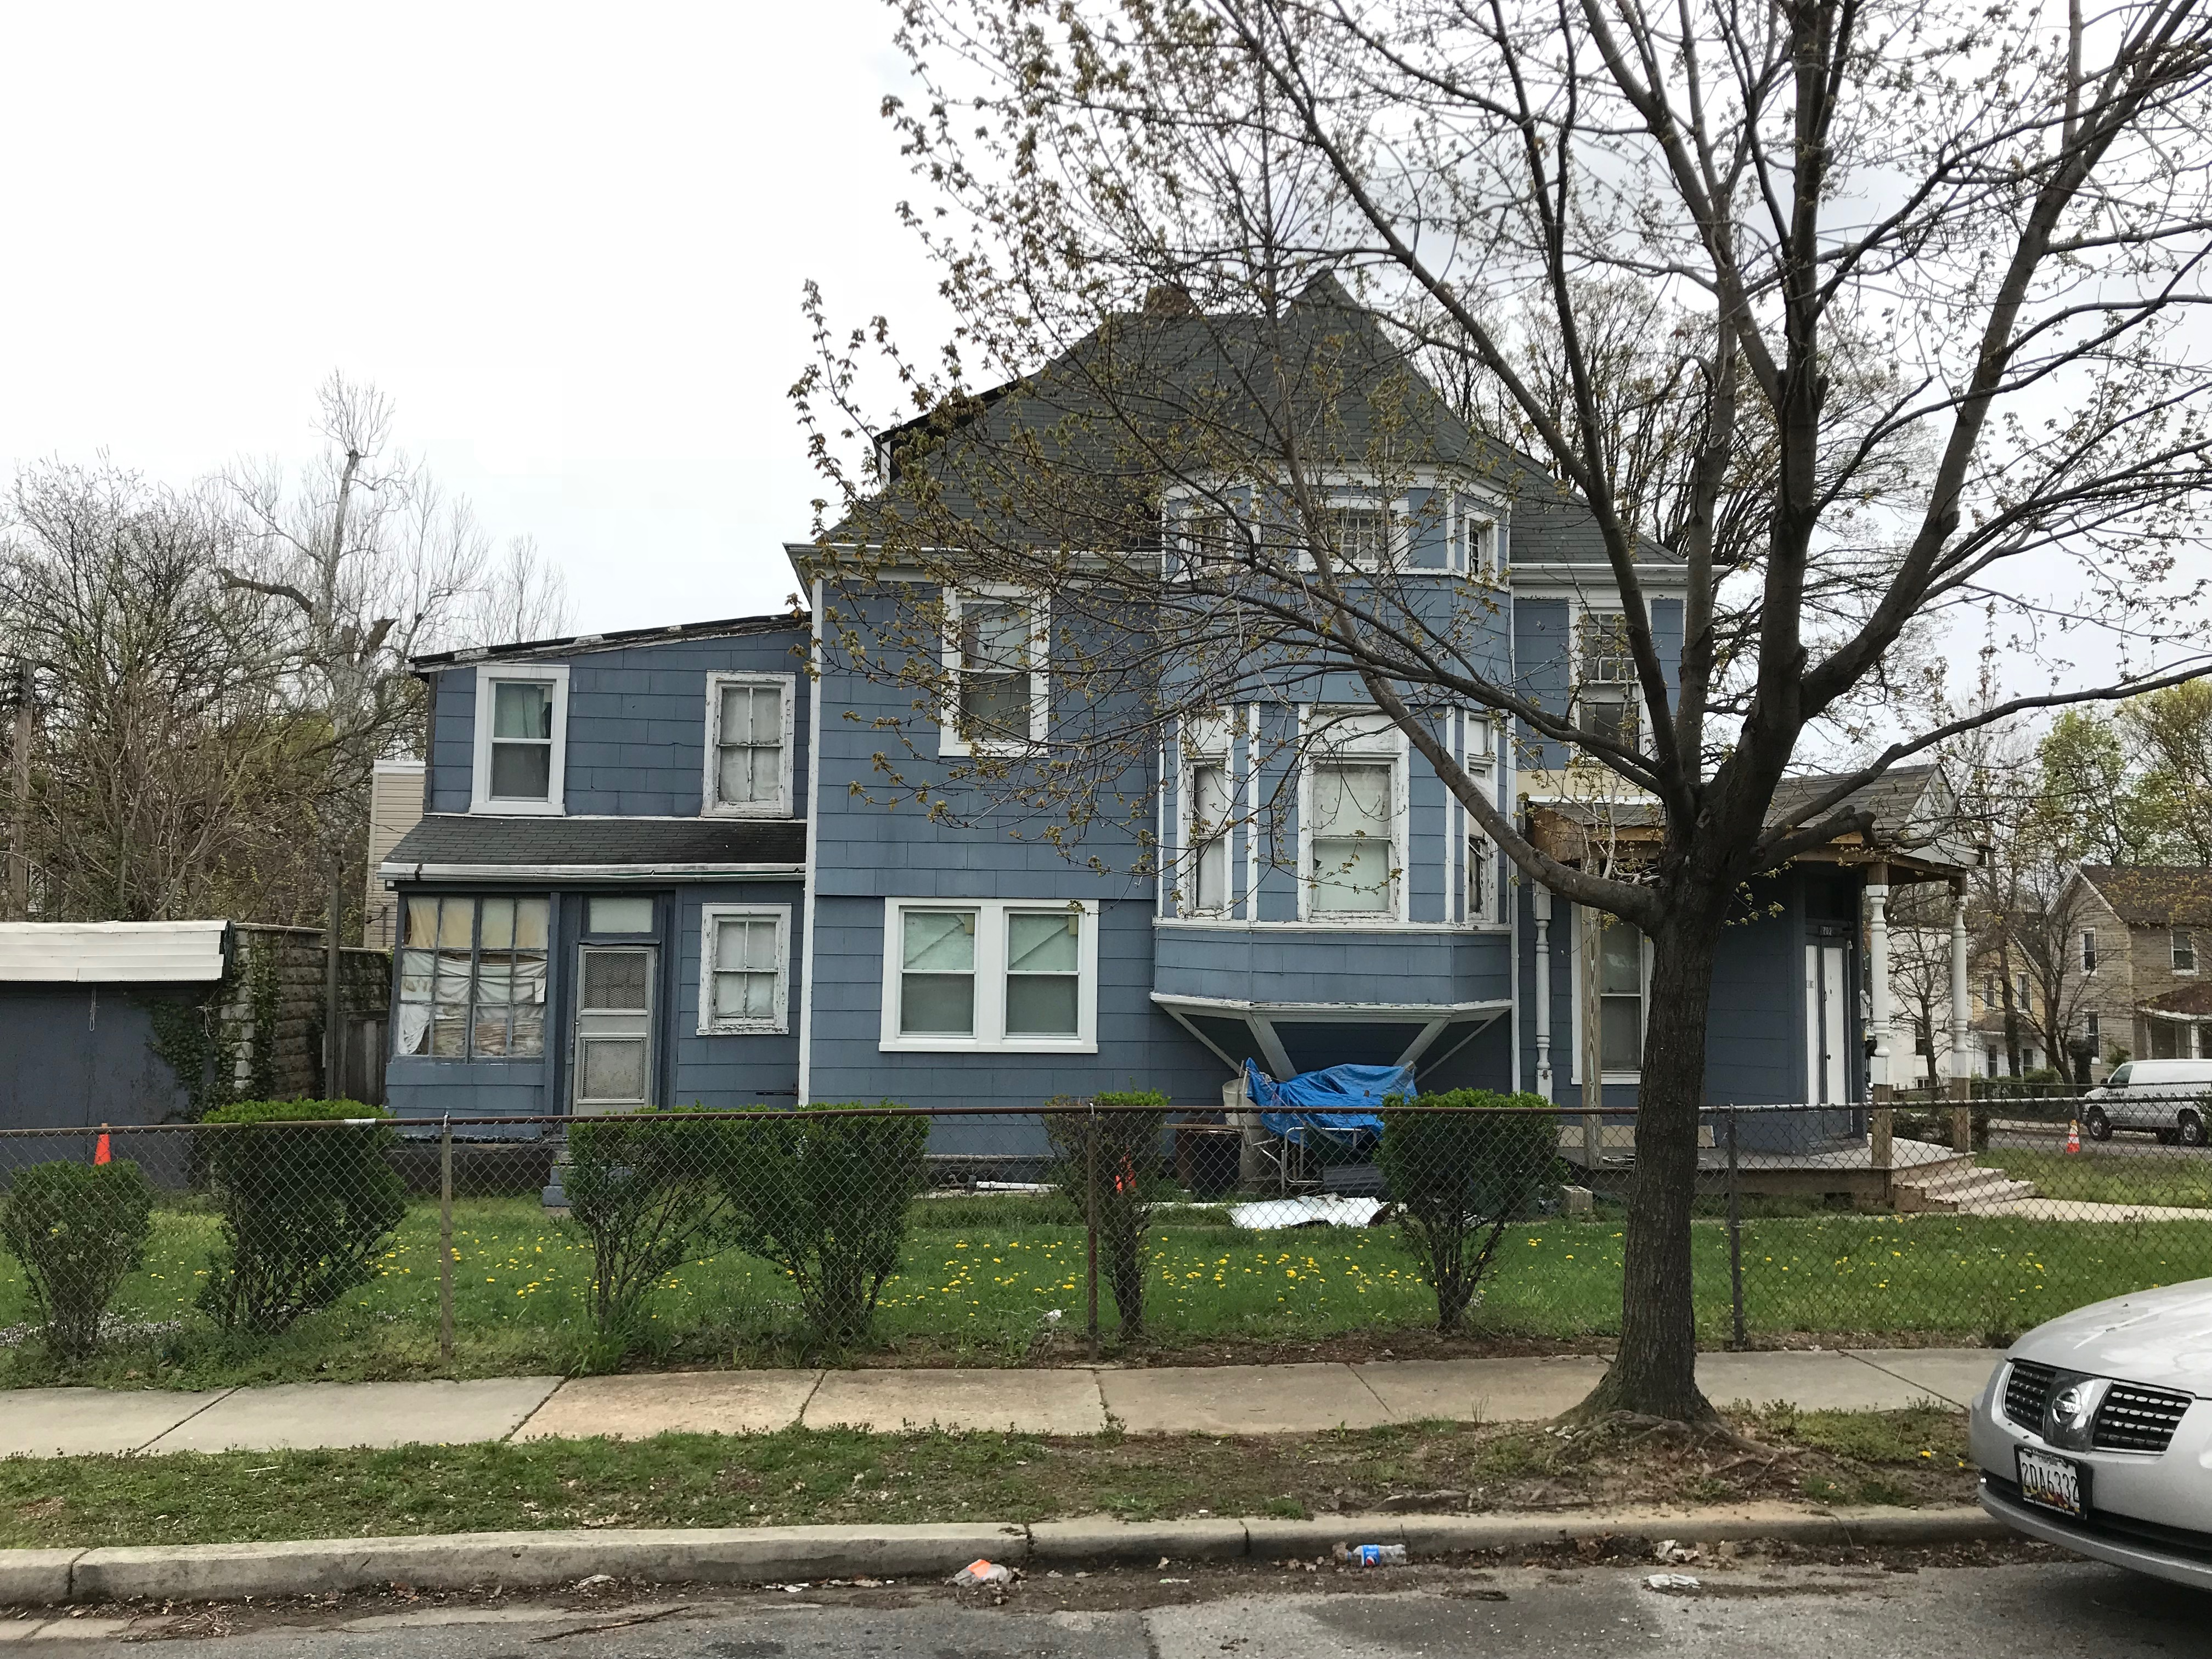 West elevation, house, 702 gorsuch avenue, baltimore, md 21218 photo